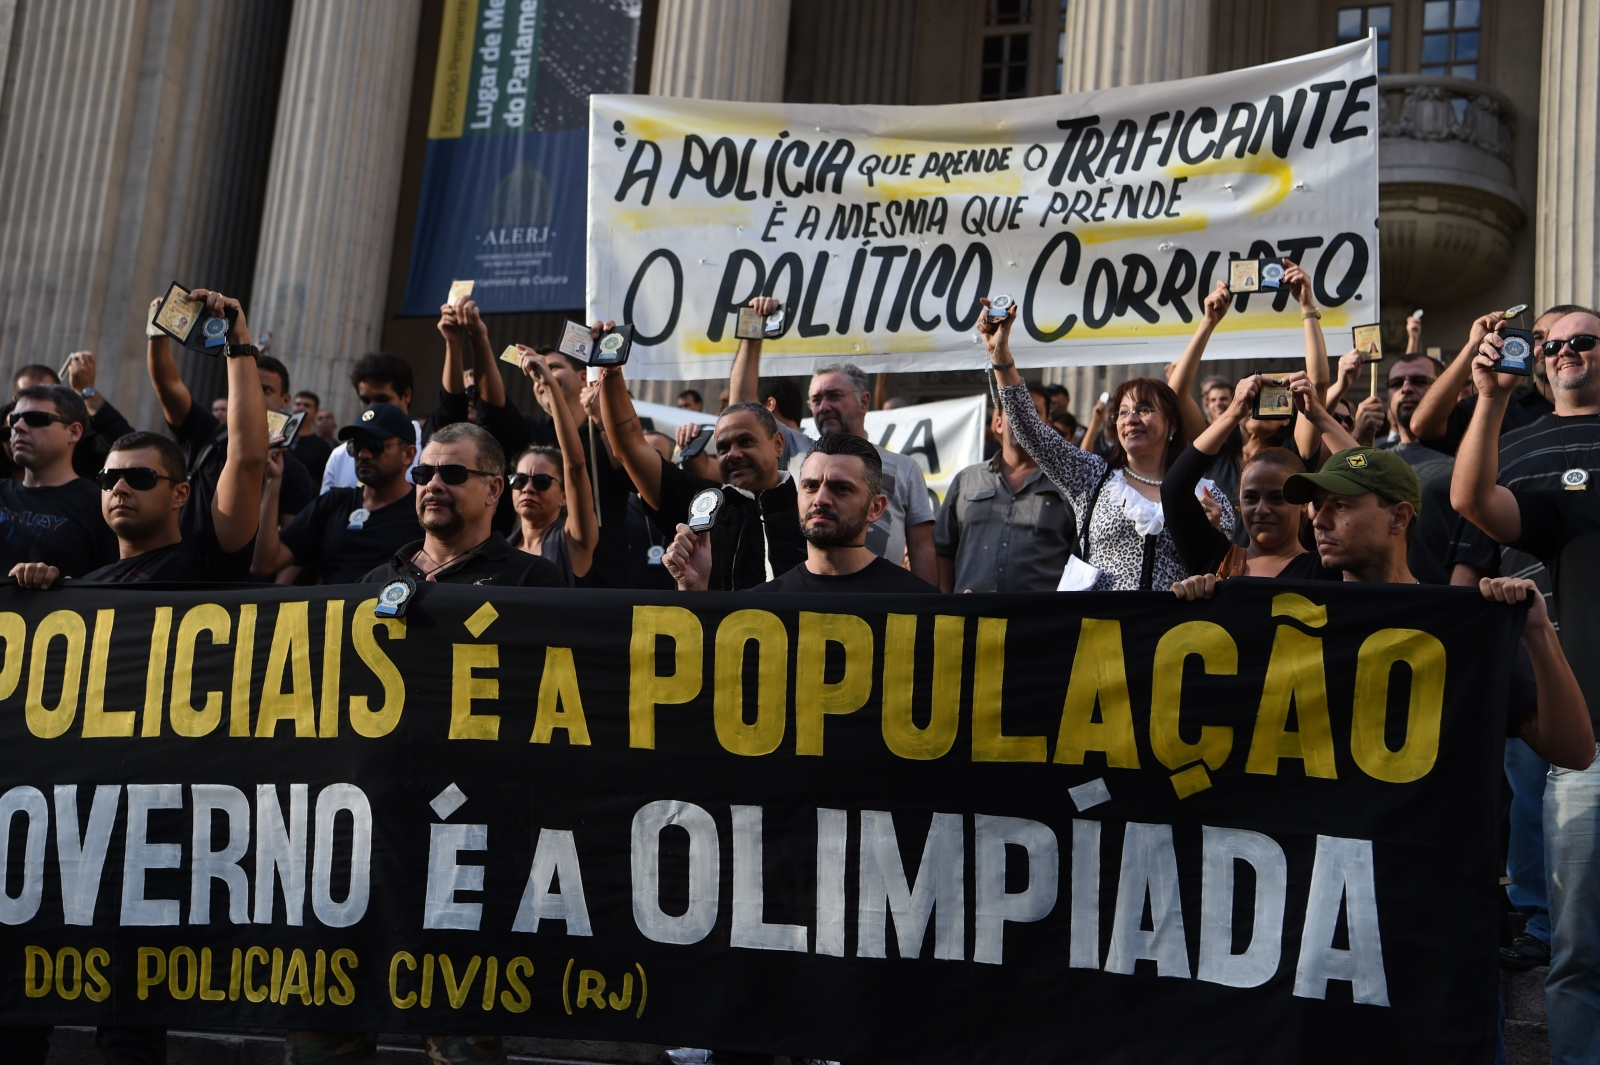 Olympics 2016: Rio police protest raises safety concerns